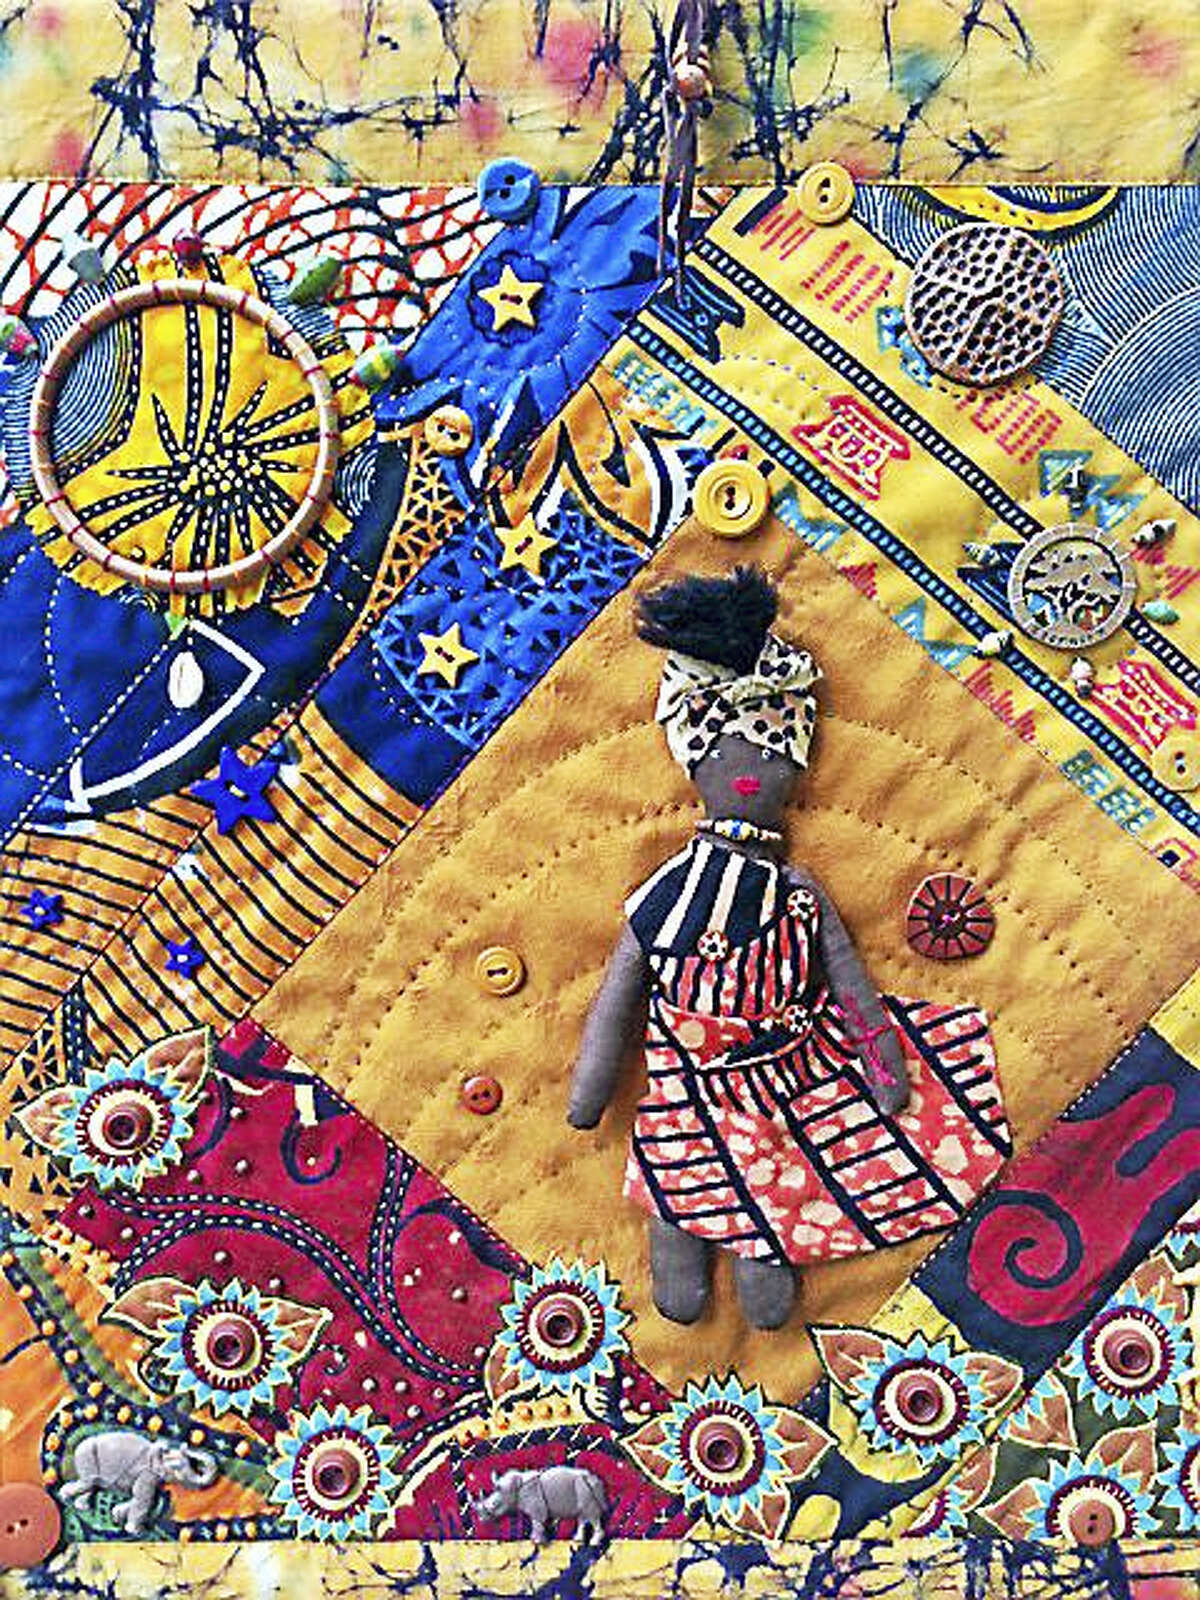 """Contributed photo The ladies of """"Sisters In Stitches Joined by the Cloth"""" of eastern Massachusetts will bring their unique quilt creations to Venture Smith Day, set for Sept. 10 in East Haddam."""